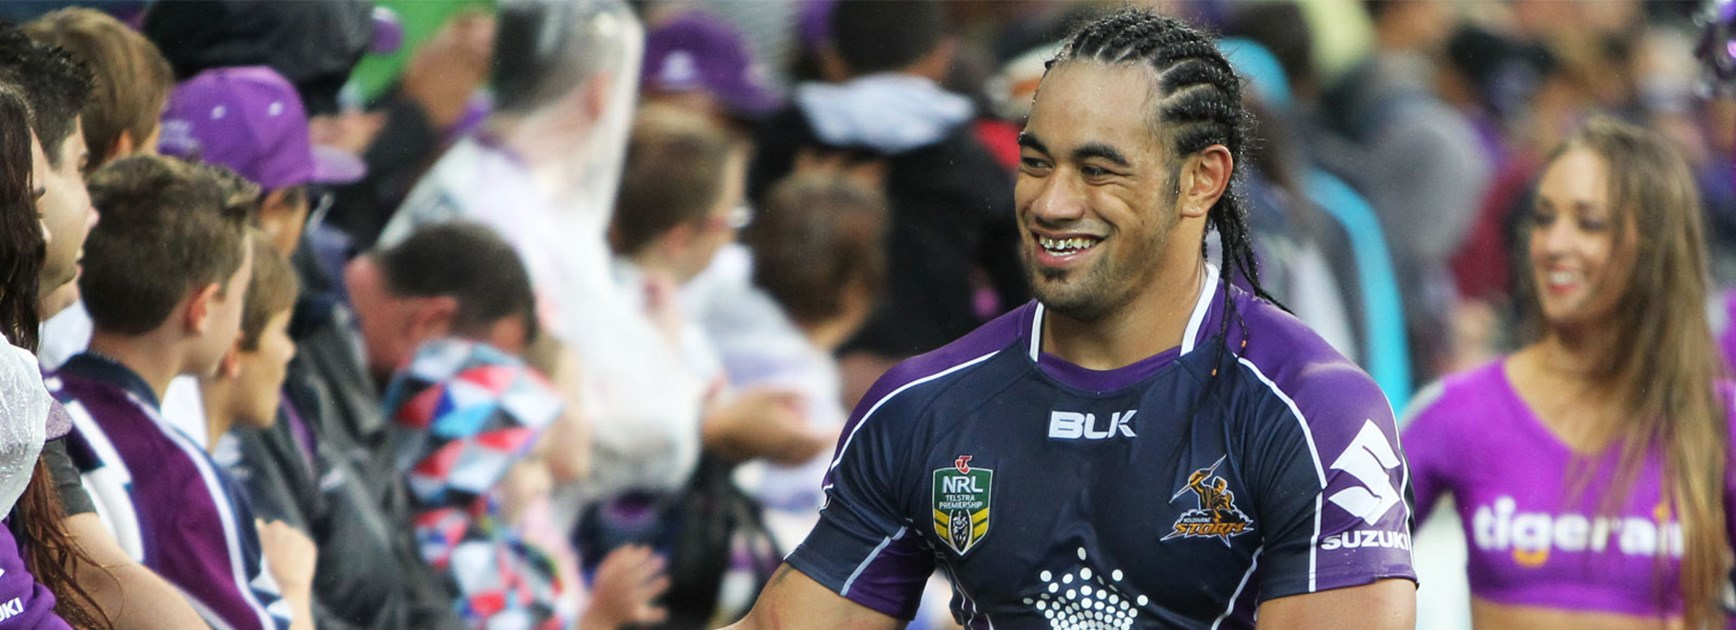 Mahe Fonua became the first Victorian to play for the Melbourne Storm in 2012.